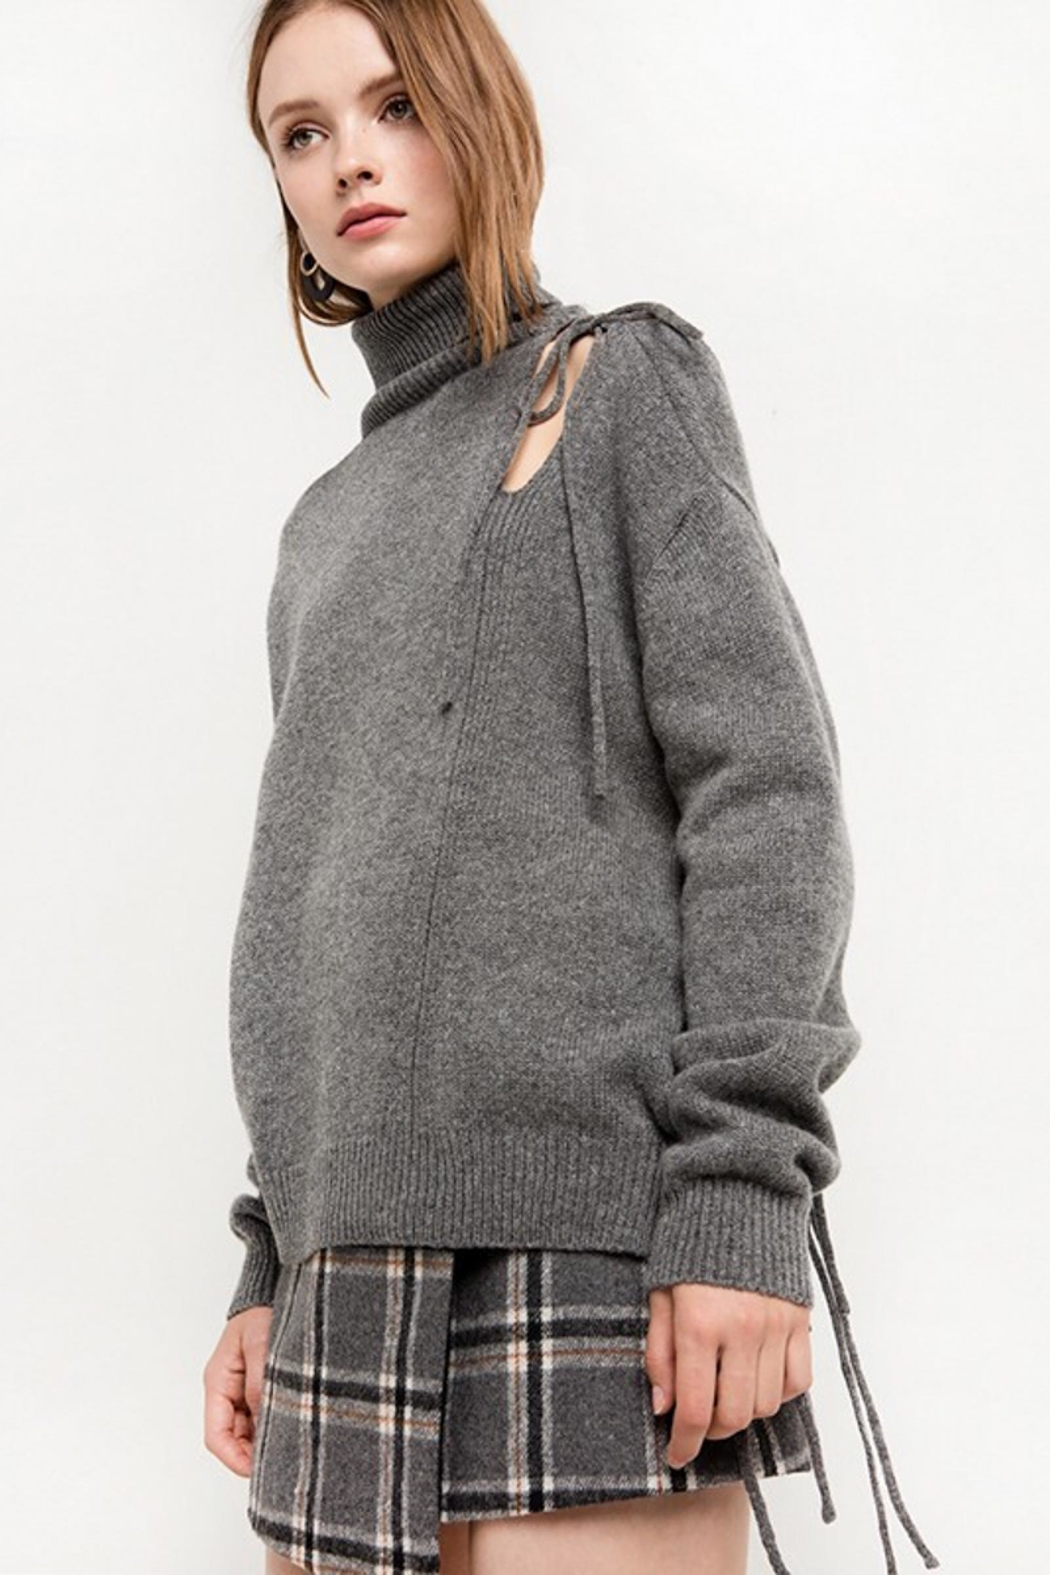 People Outfitter Grey Cut Out Turtleneck Sweater - Front Full Image